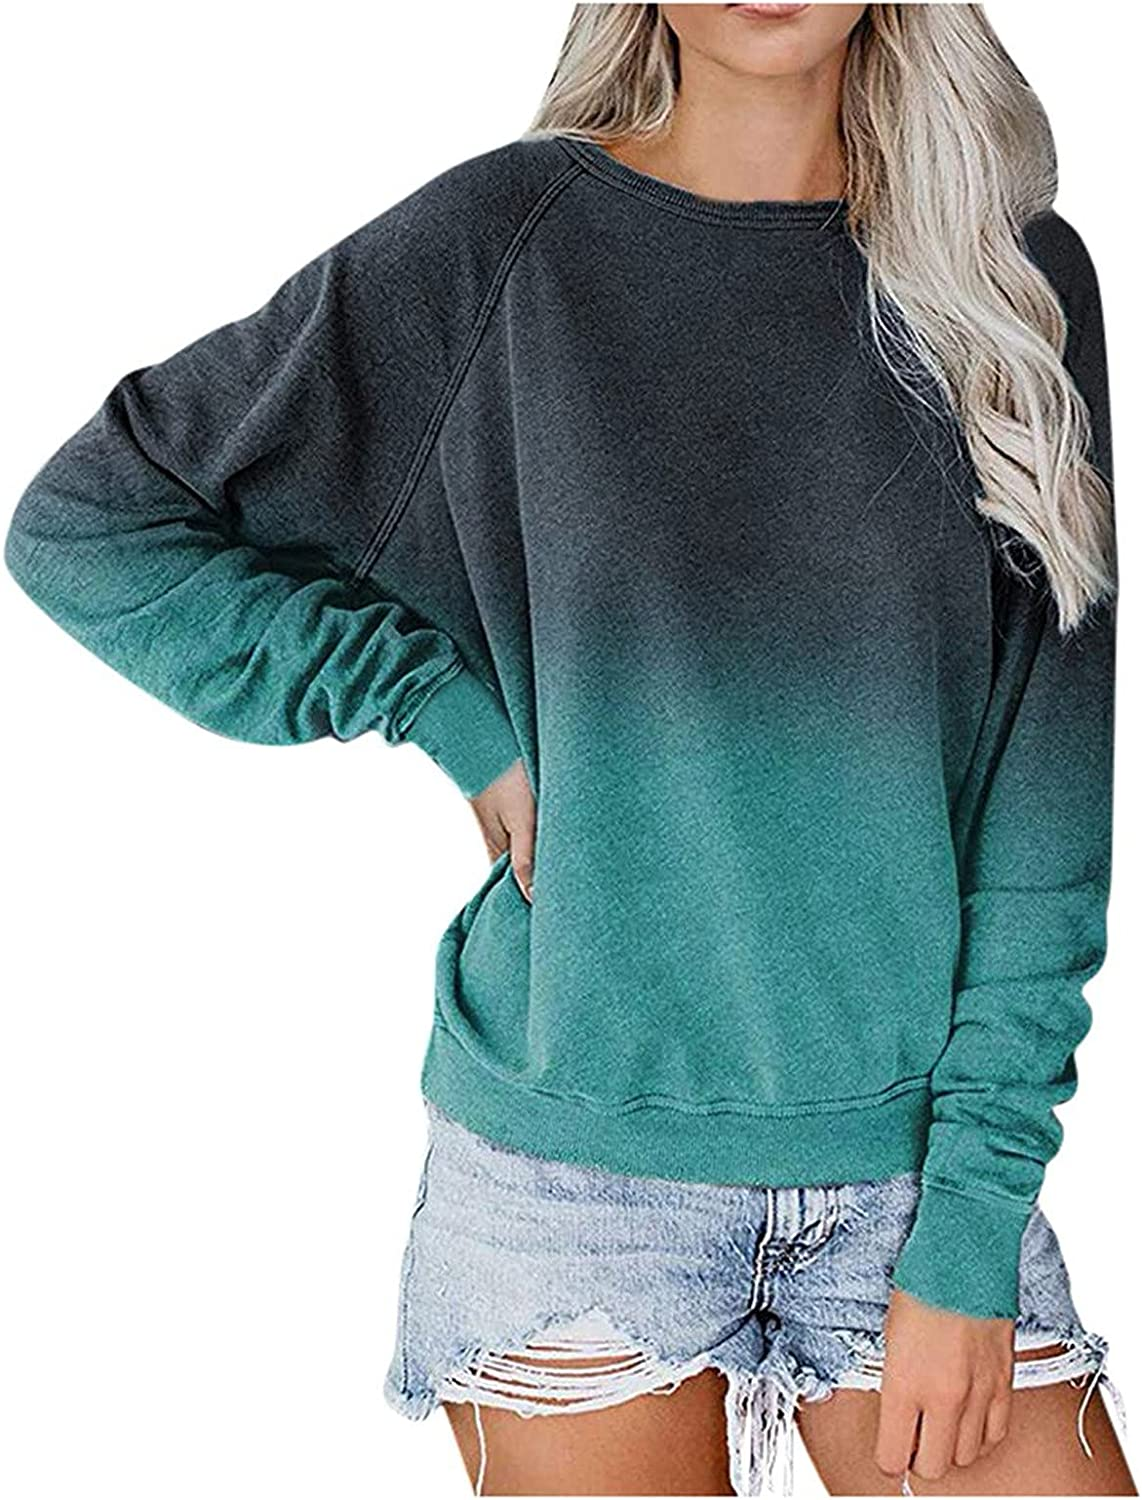 Sweatshirts for Women, Pullover Oversized Vintage Solid Long Sleeve Loose Sweatshirt Sweaters Tops Shirts